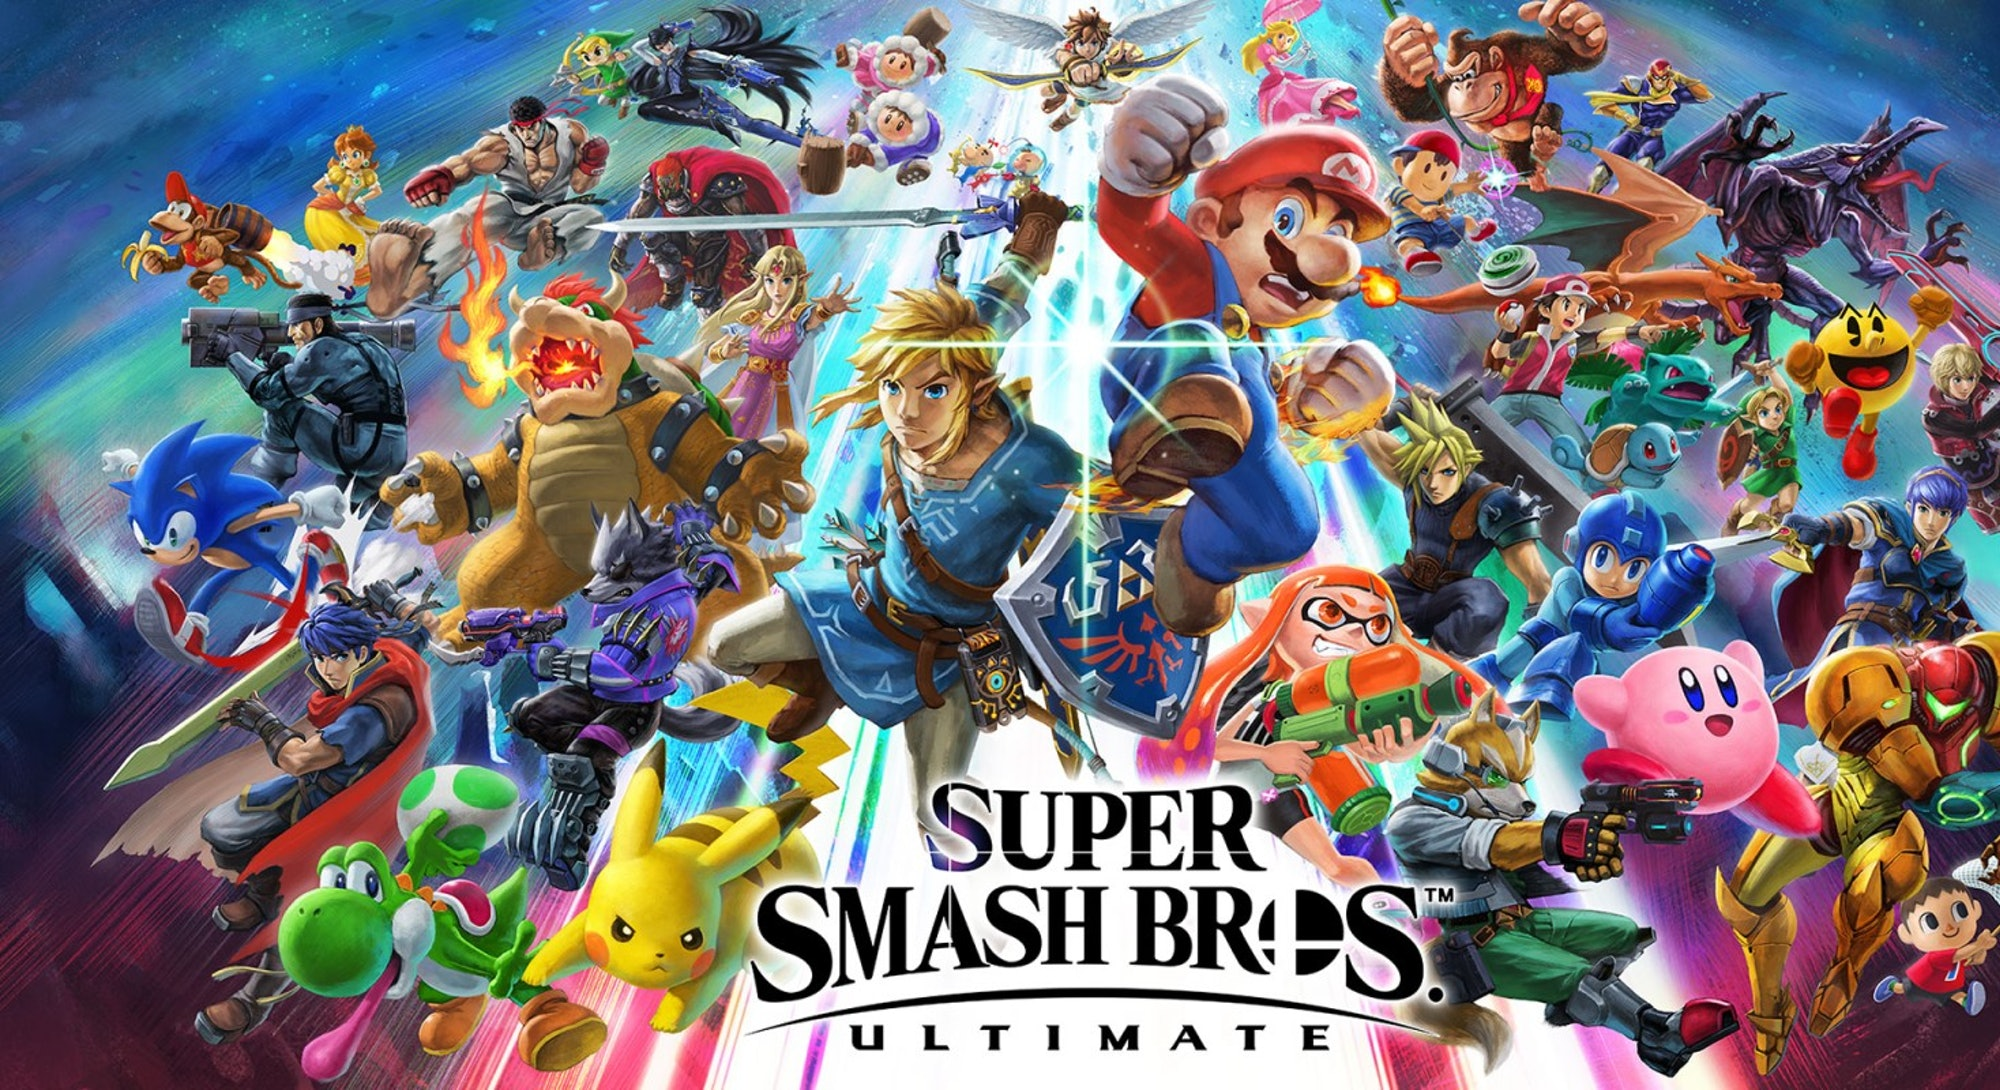 A still from Super Smash Bros. Ultimate